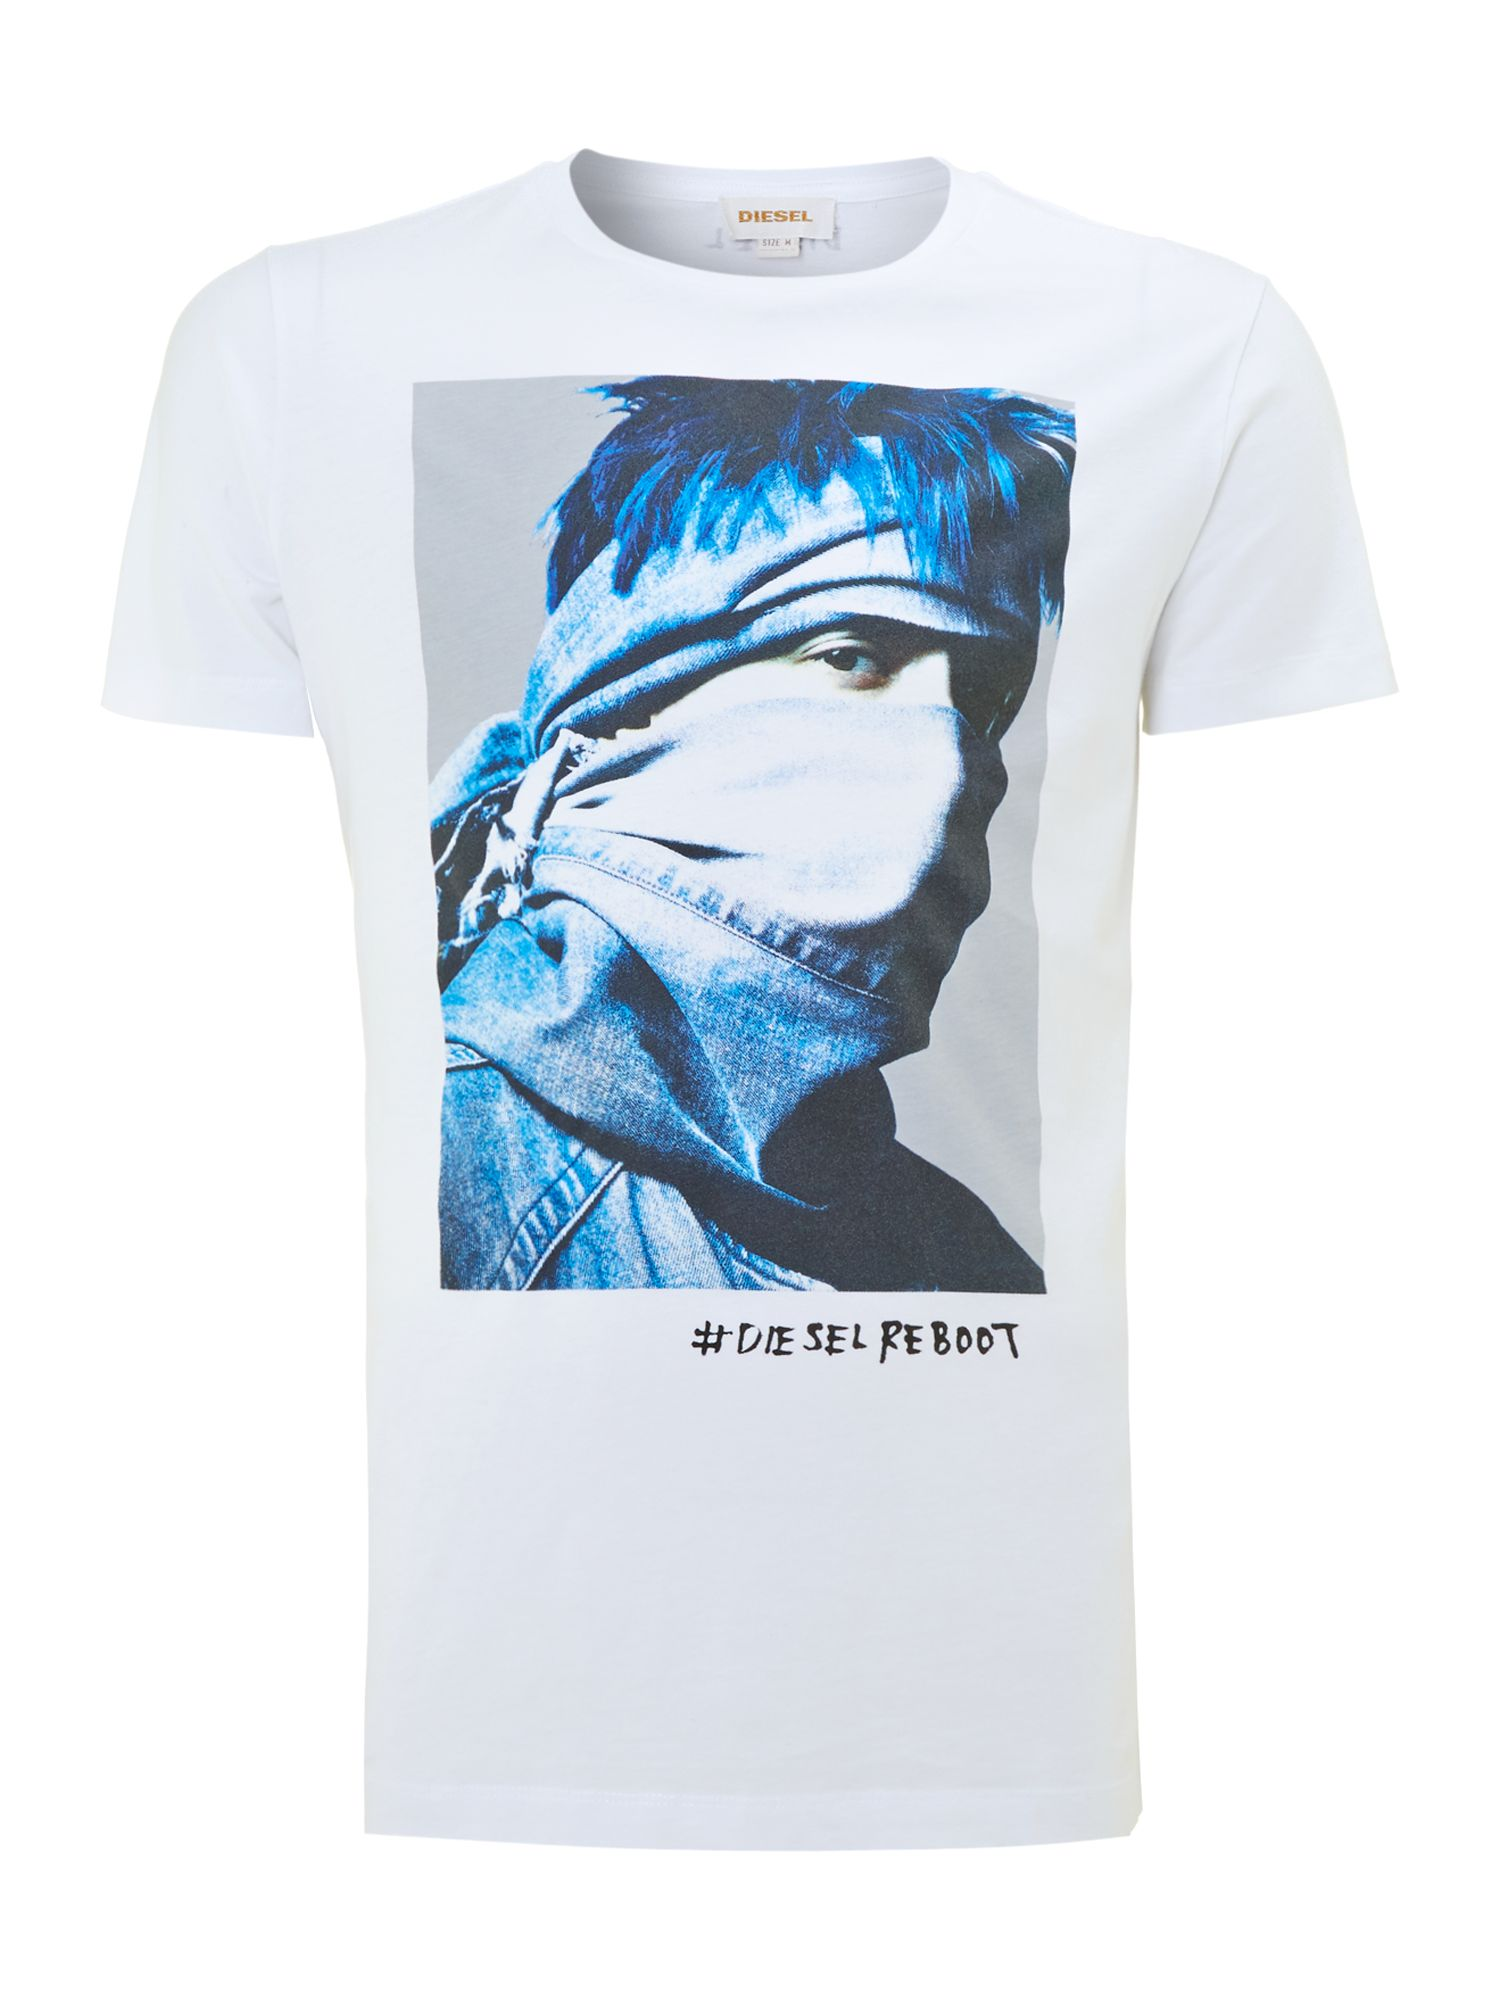 Rebel print t shirt